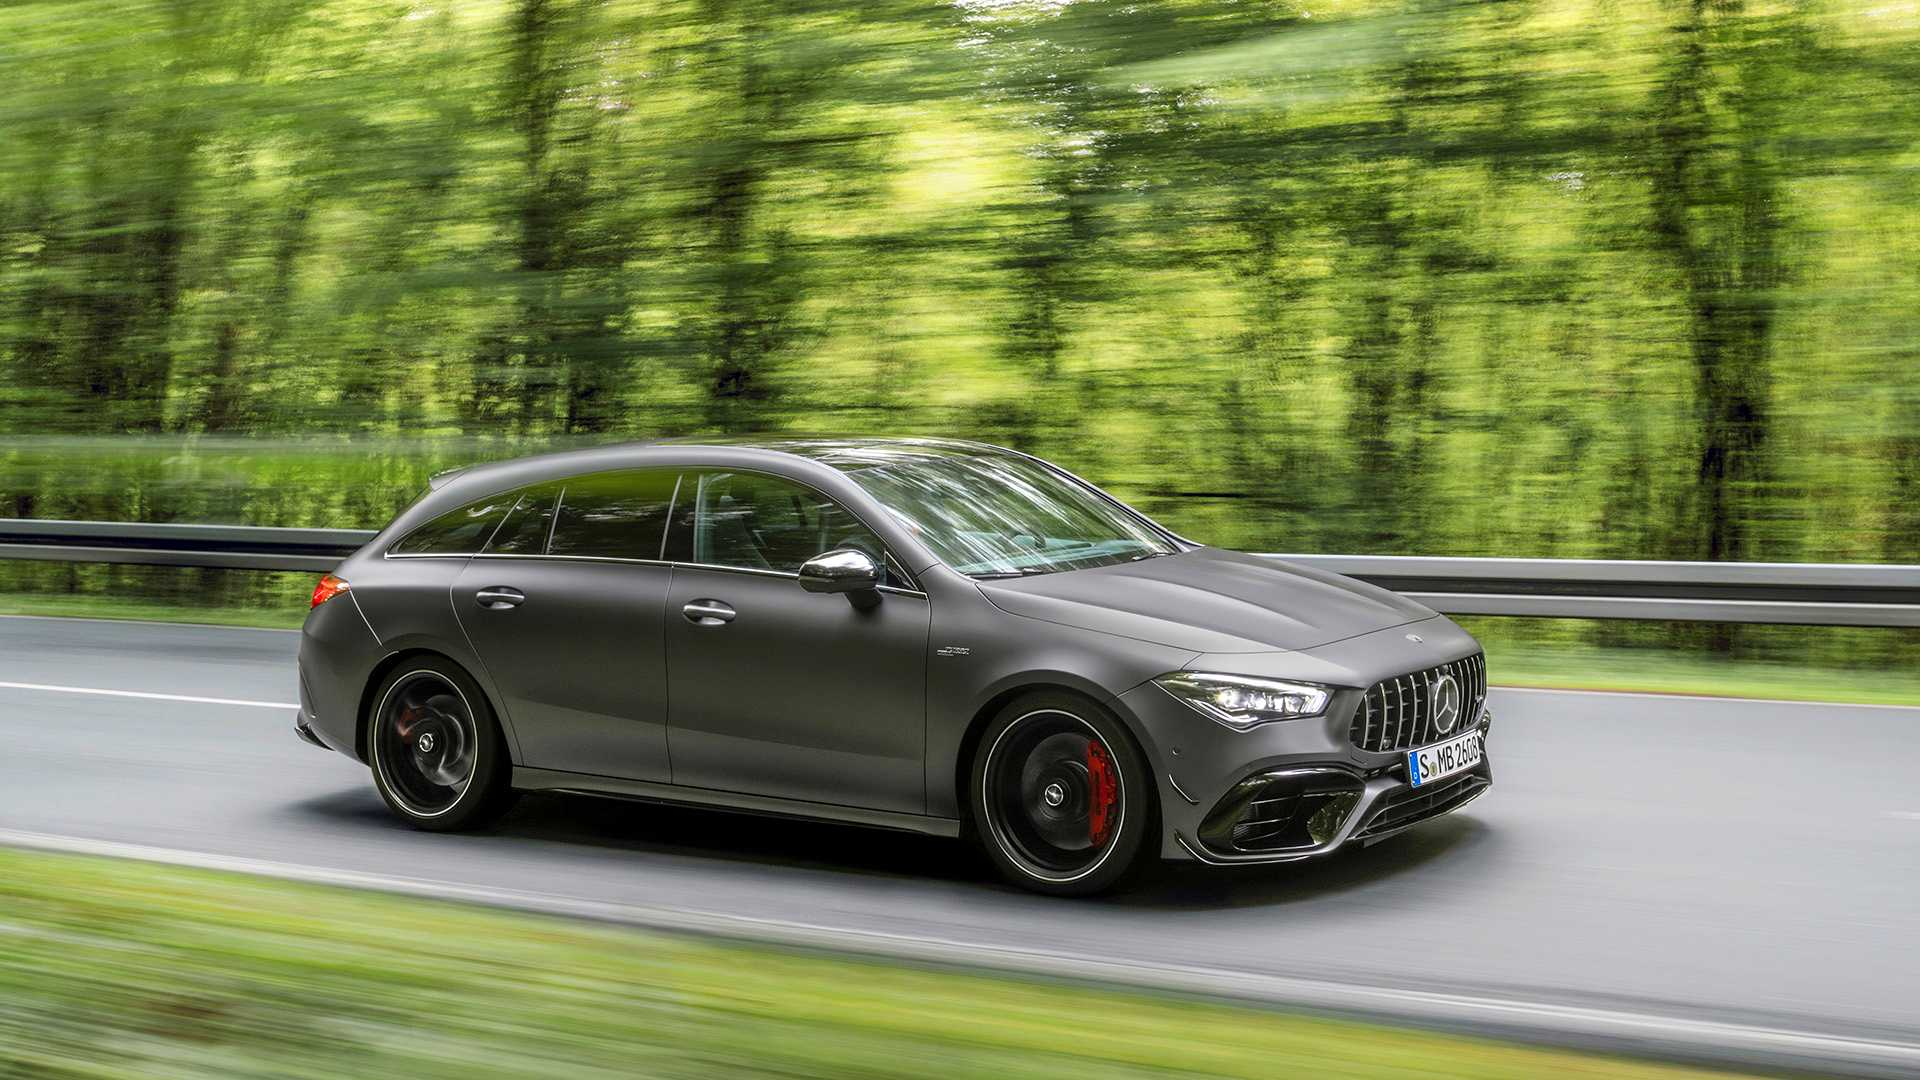 2020 Mercedes-AMG CLA 45 S 4MATIC+ Shooting Brake Front Three-Quarter Wallpapers (3)